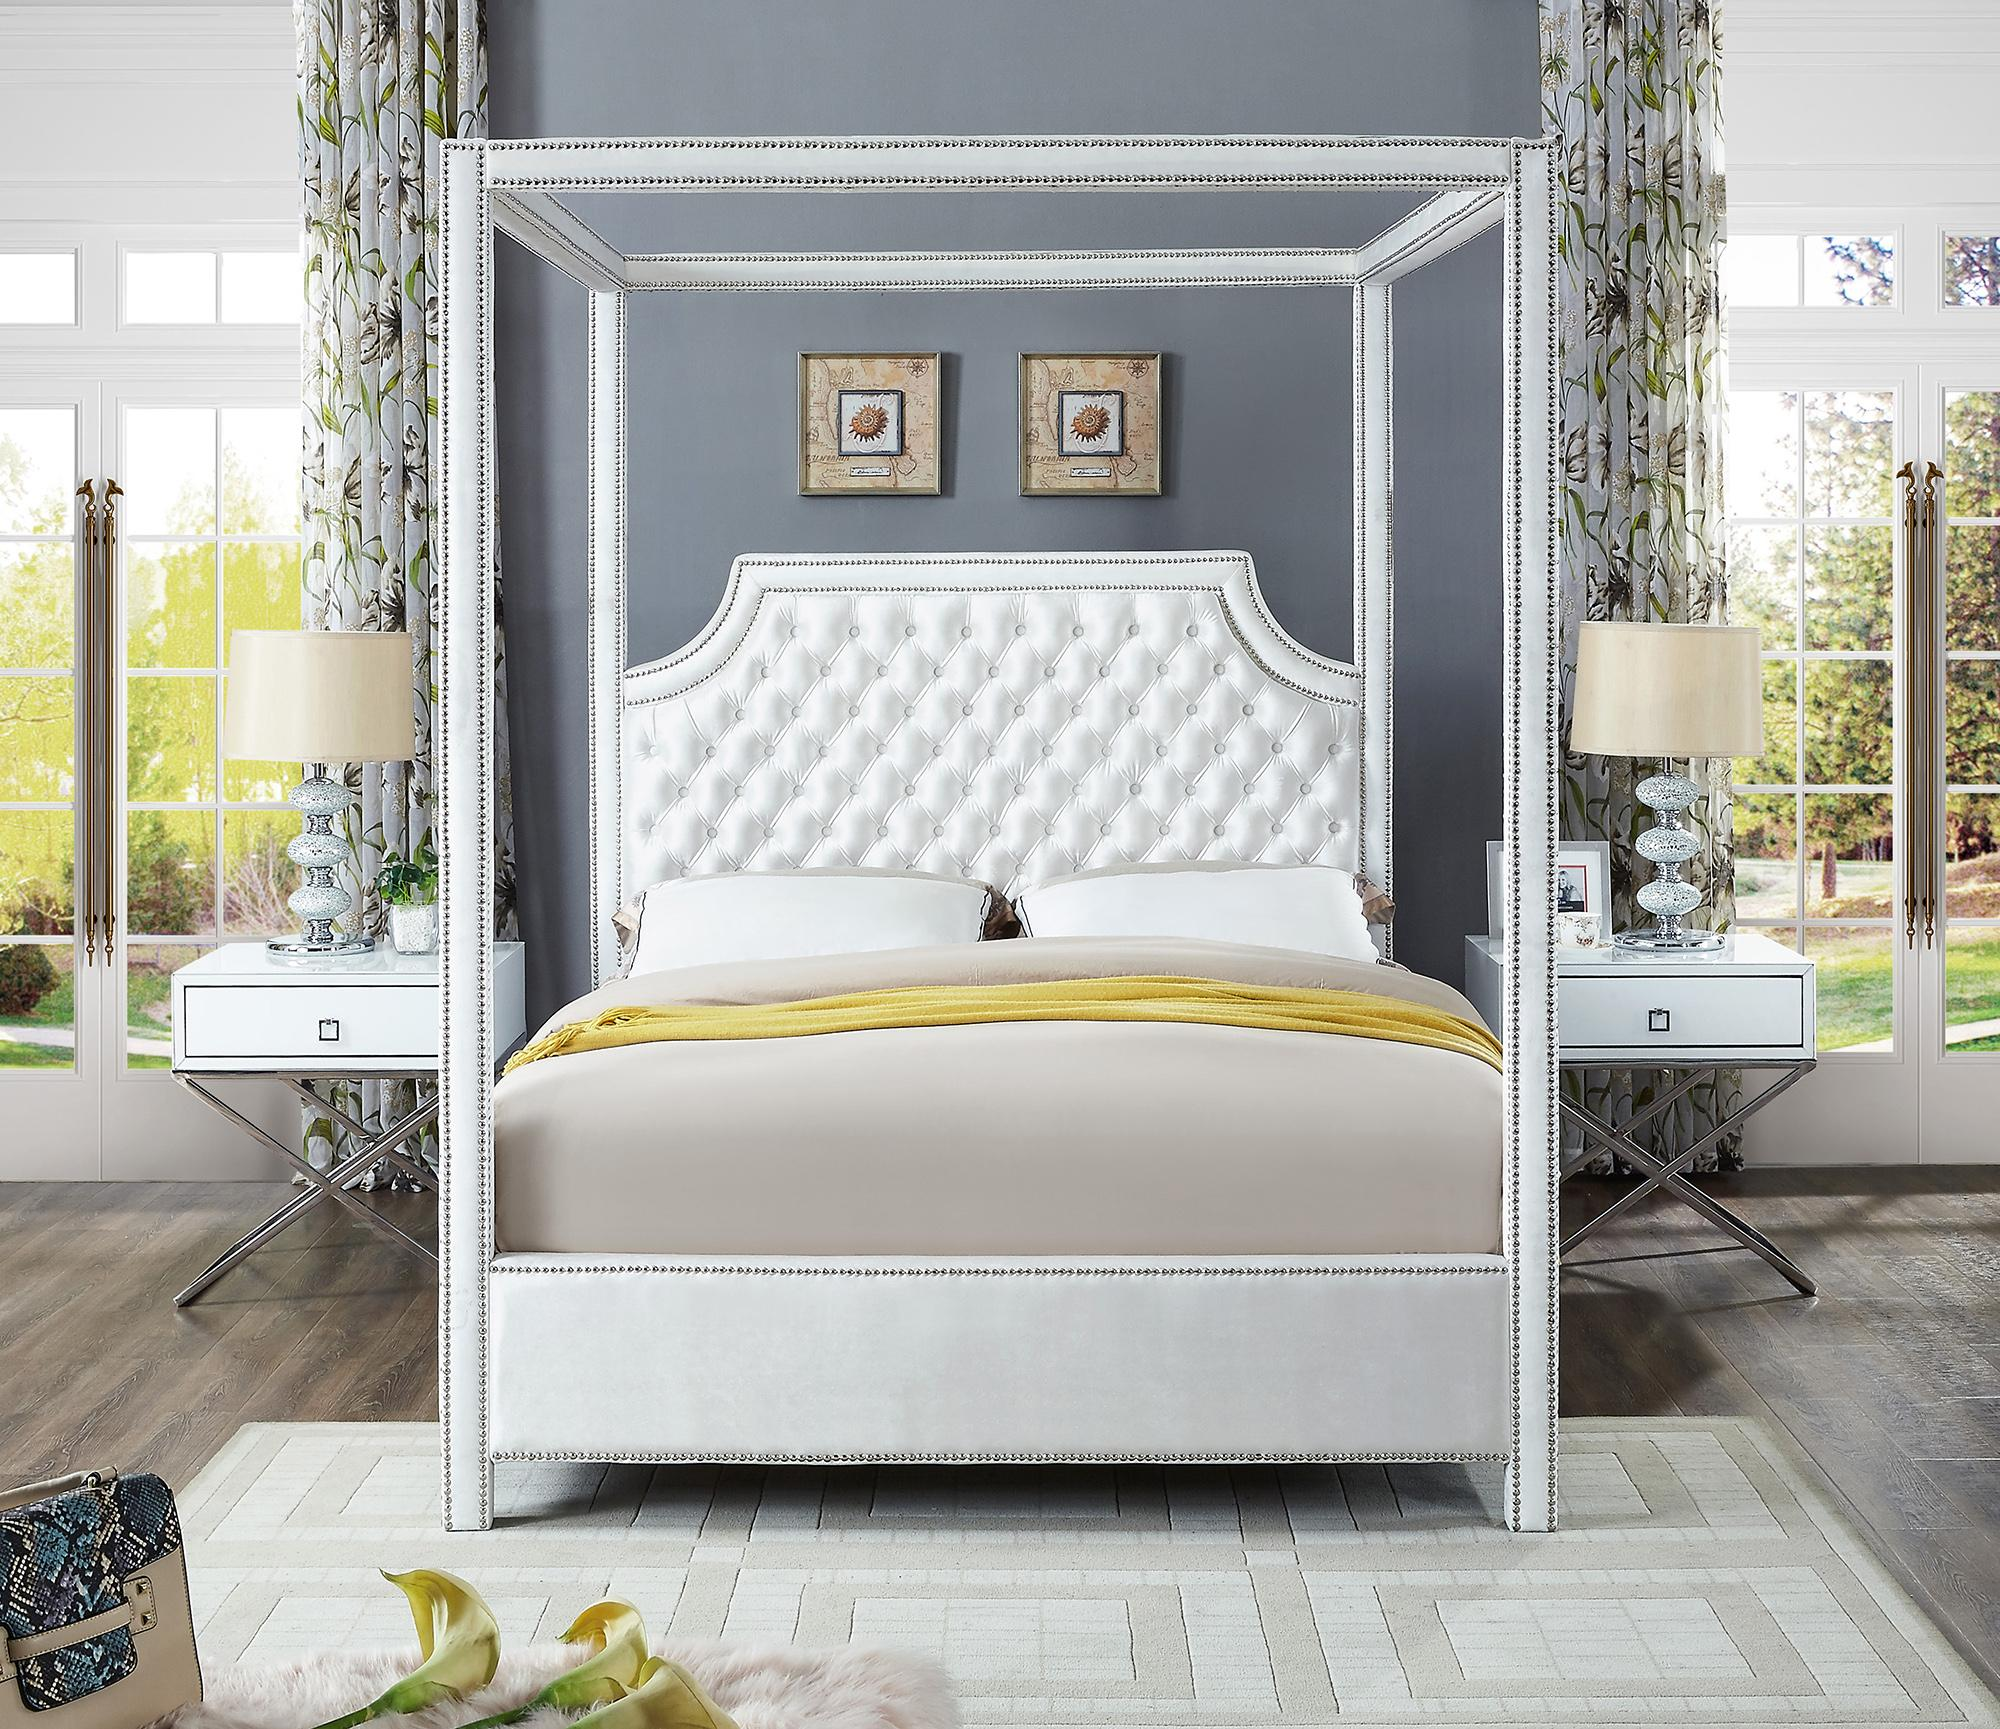 Picture of: White Velvet Queen Canopy Bed W Side Tables Set 3ps Meridian Furniture Rowan Rowanwhite Q Set 3